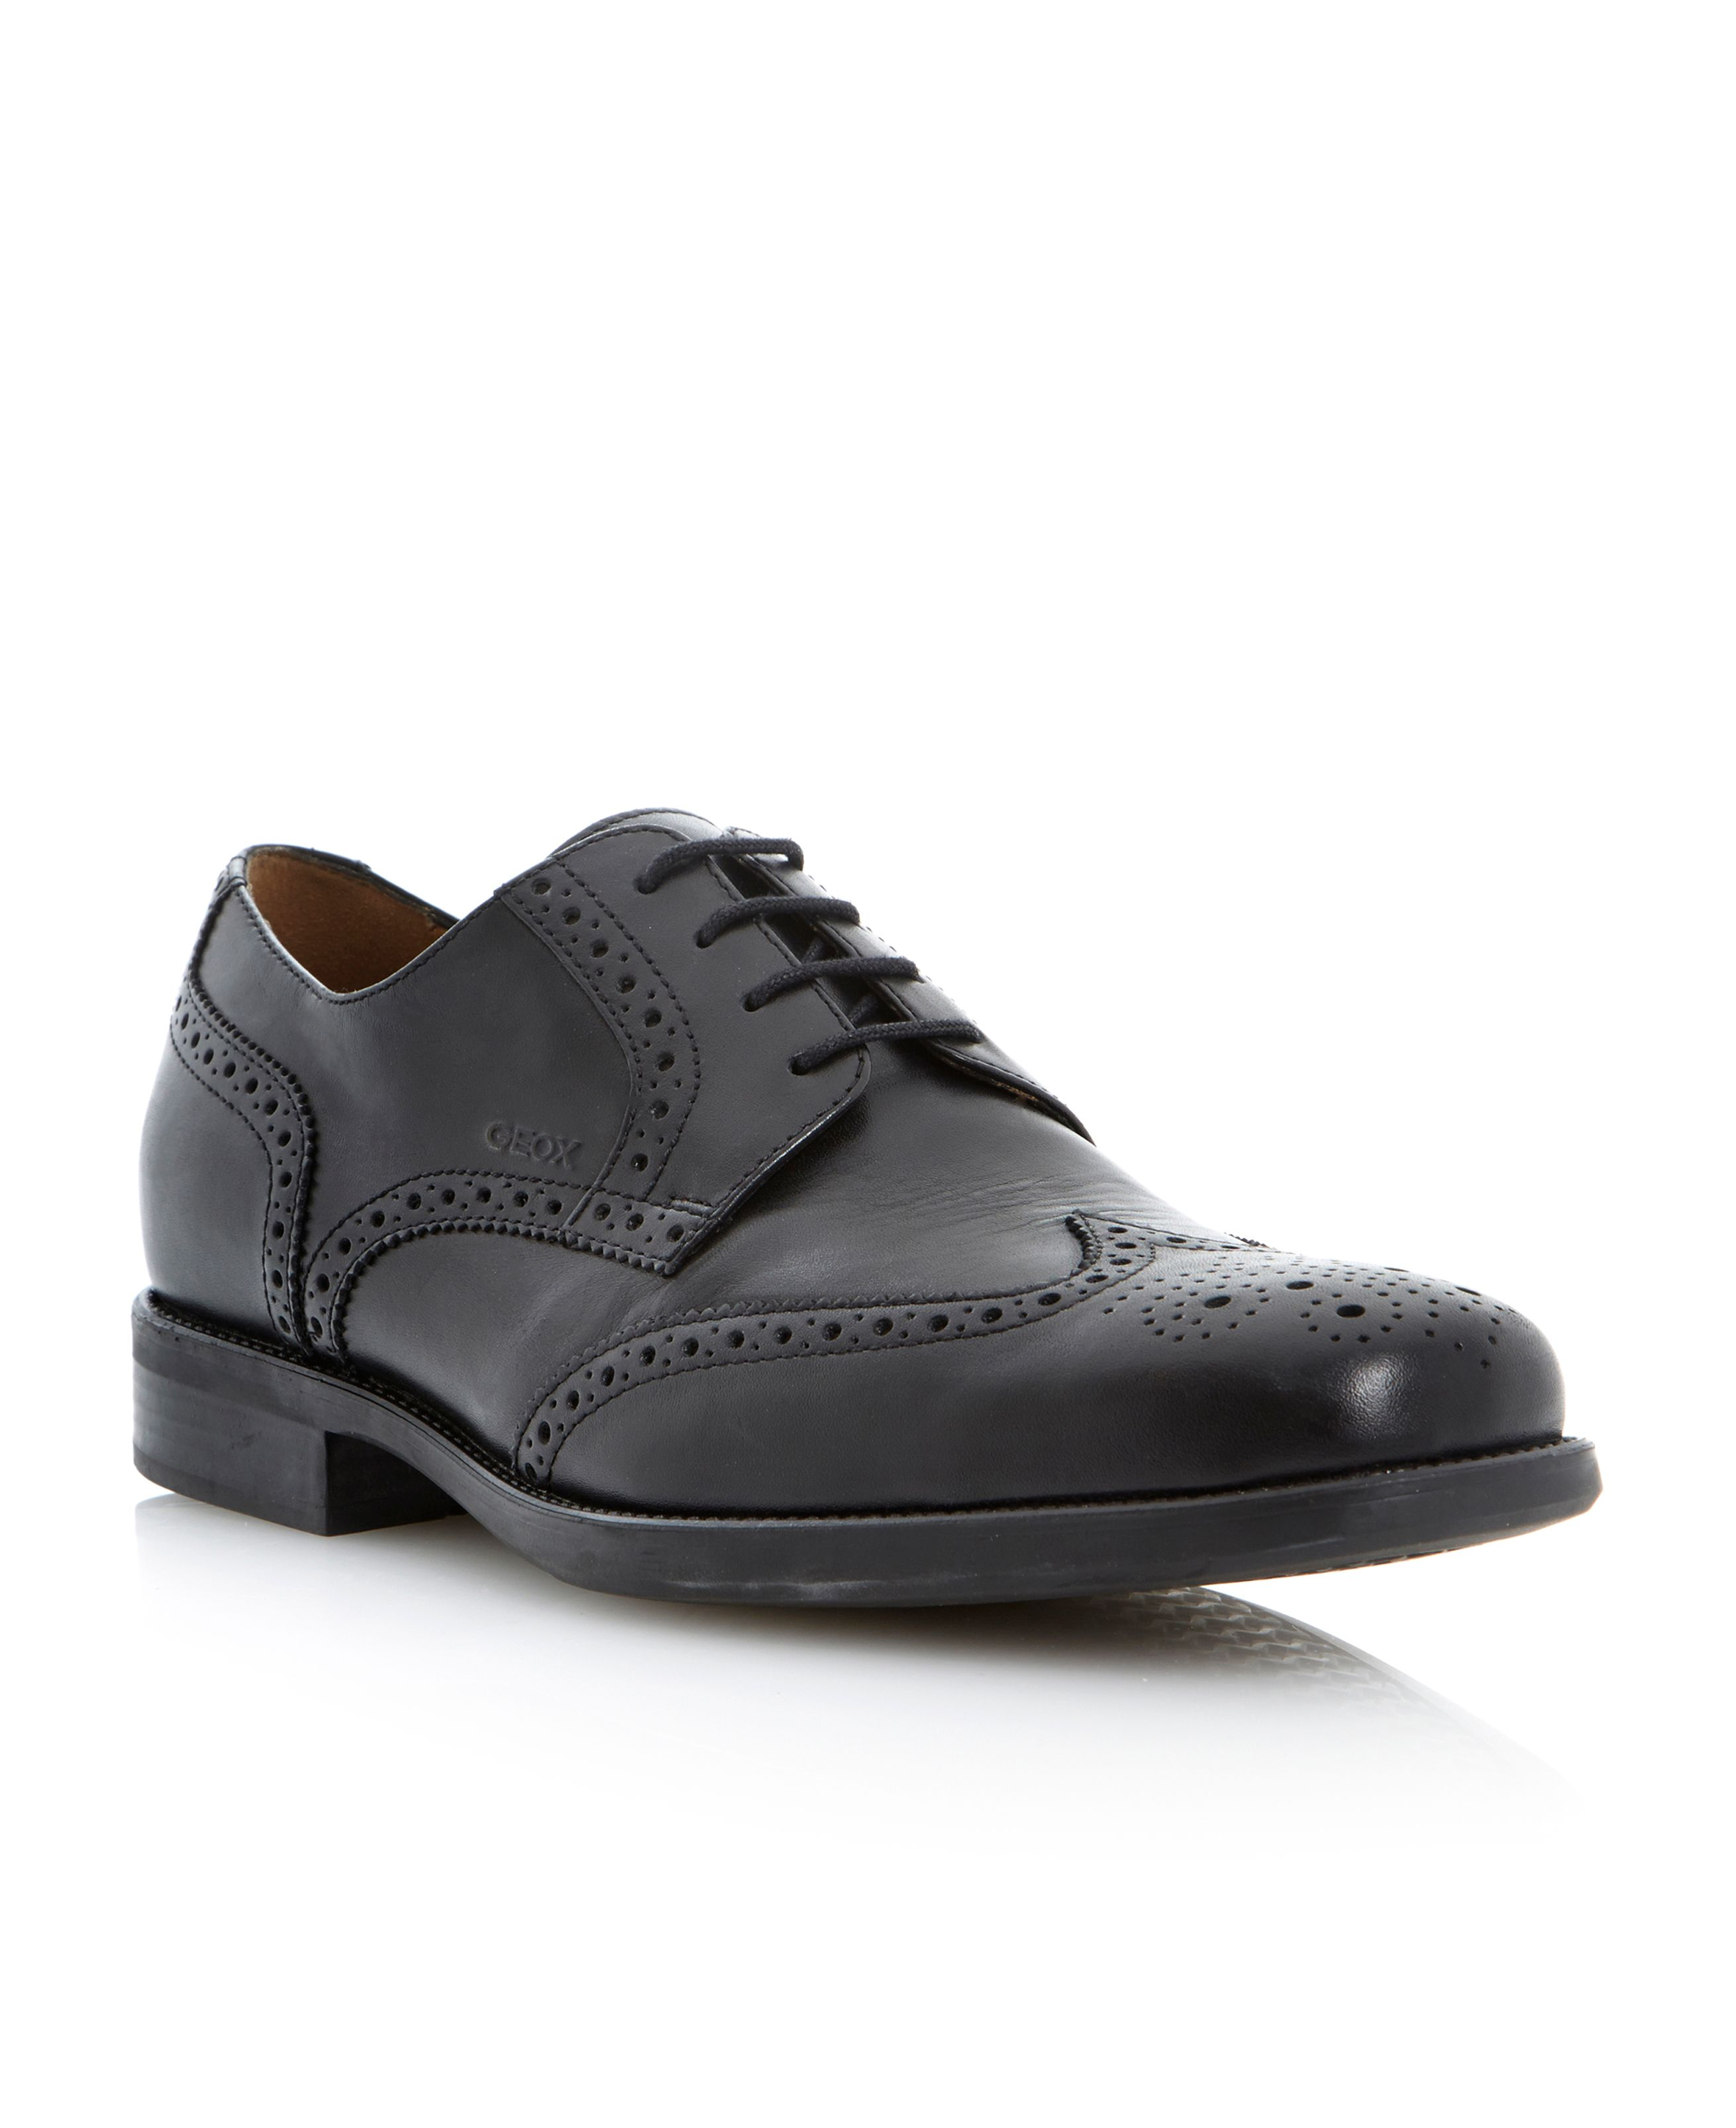 Federico u3257p lace up wingtip brogues